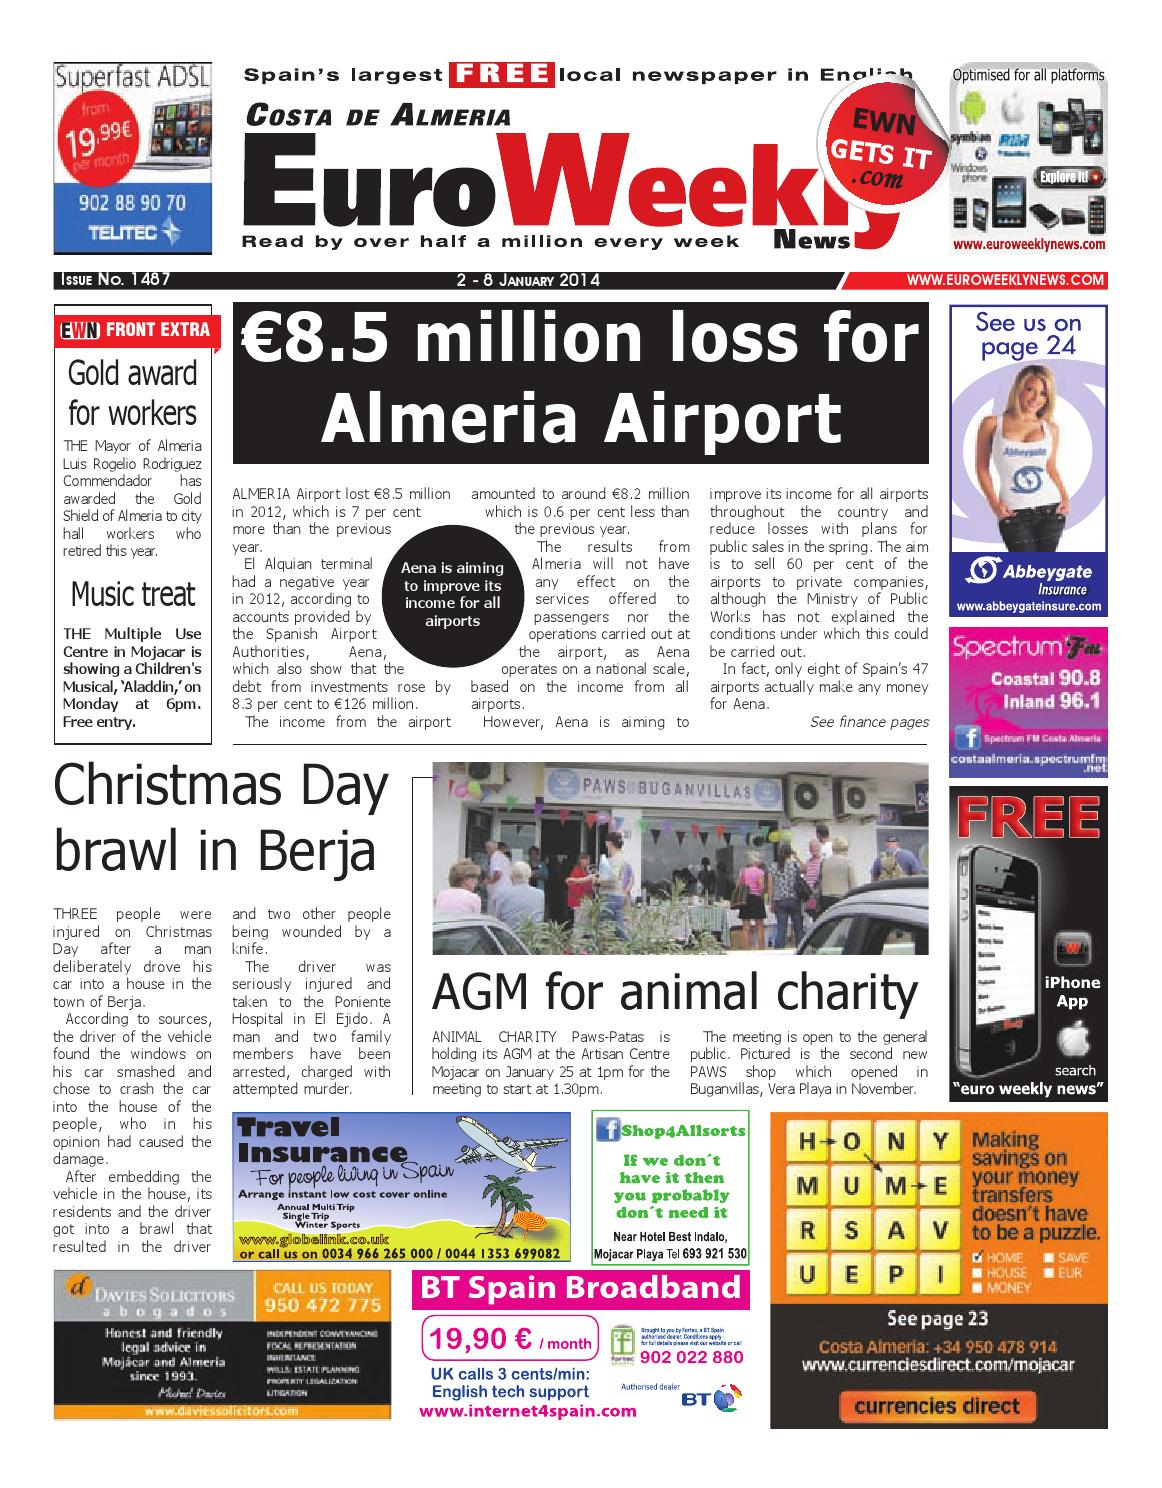 Euro Weekly News Costa De Almeria 2 8 January 2014 Issue 1487  # Muebles Rogelio Nerja